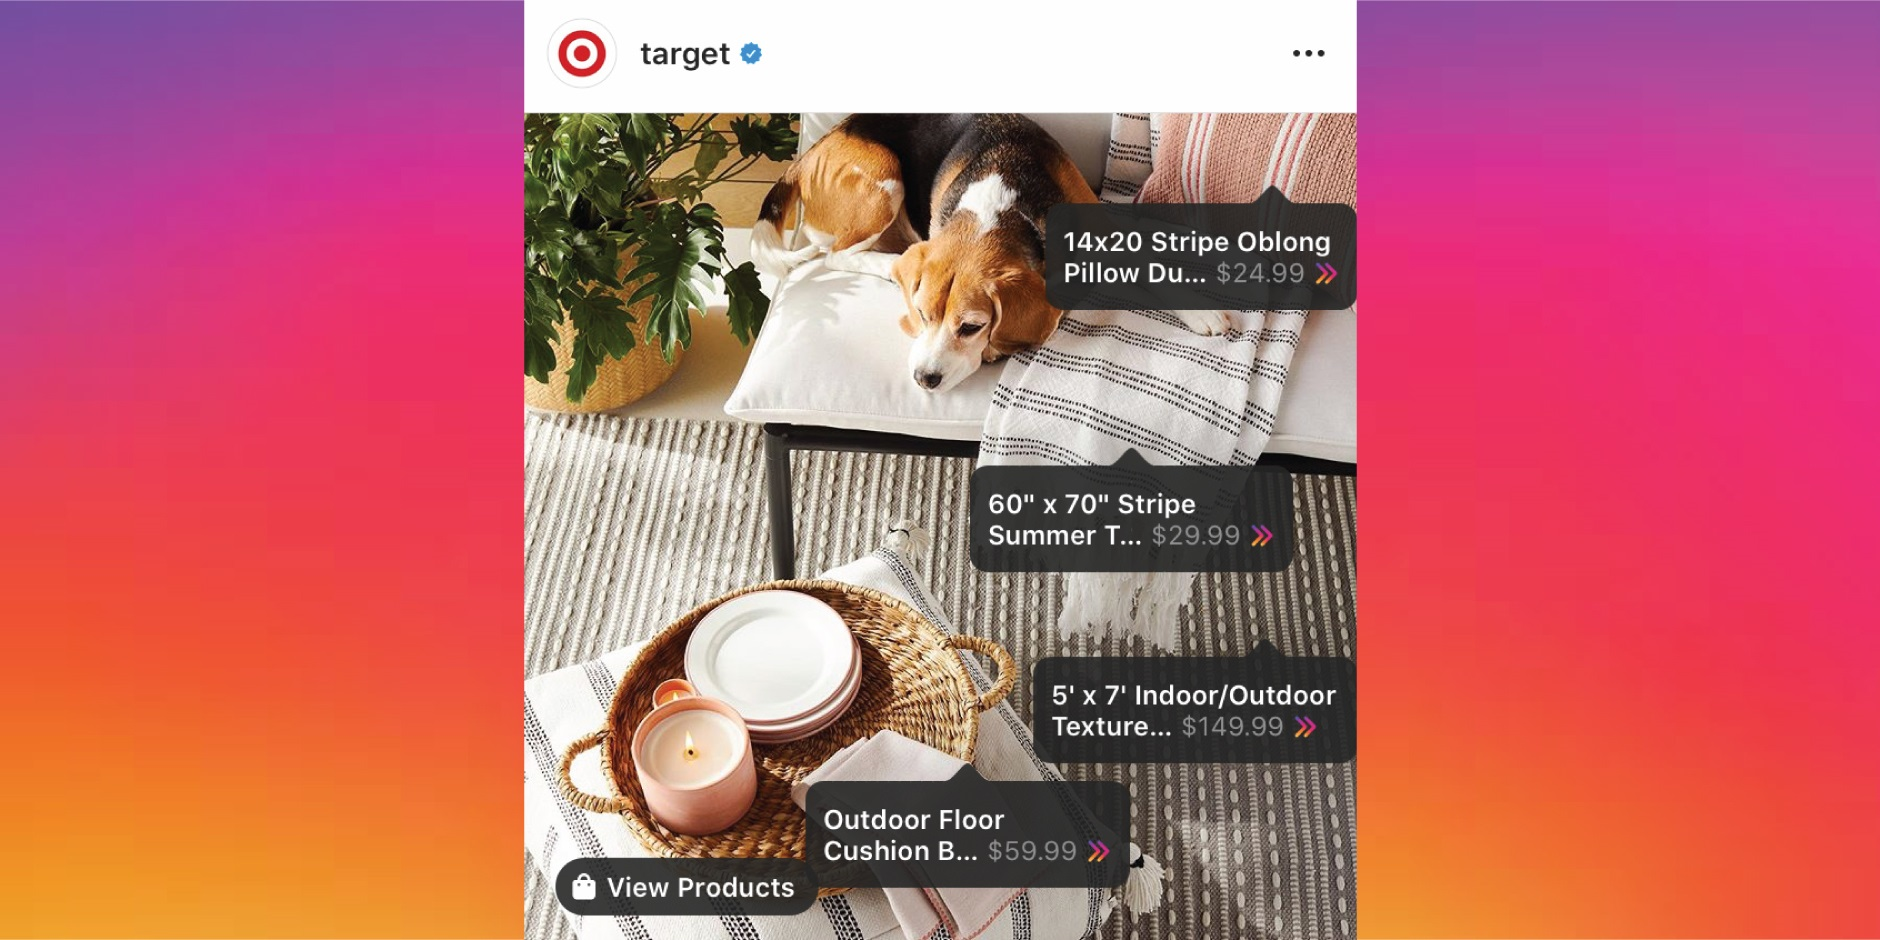 Target Becomes First Mass Retailer to Make Products Available Through Instagram Checkout